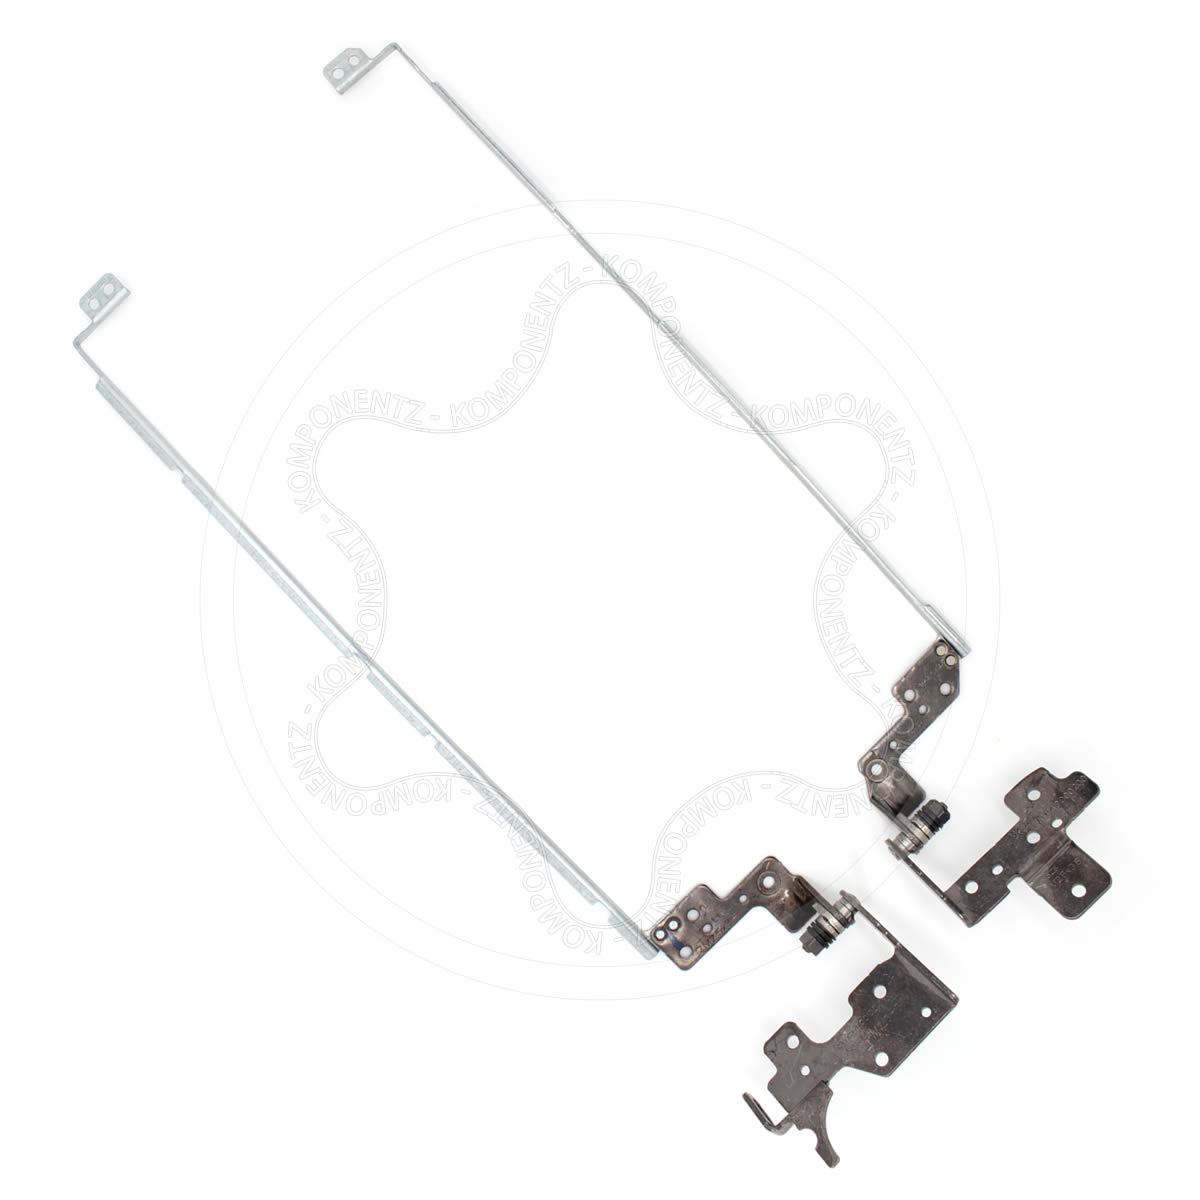 Replacement LCD Screen Support Bracket Hinges Left & Right